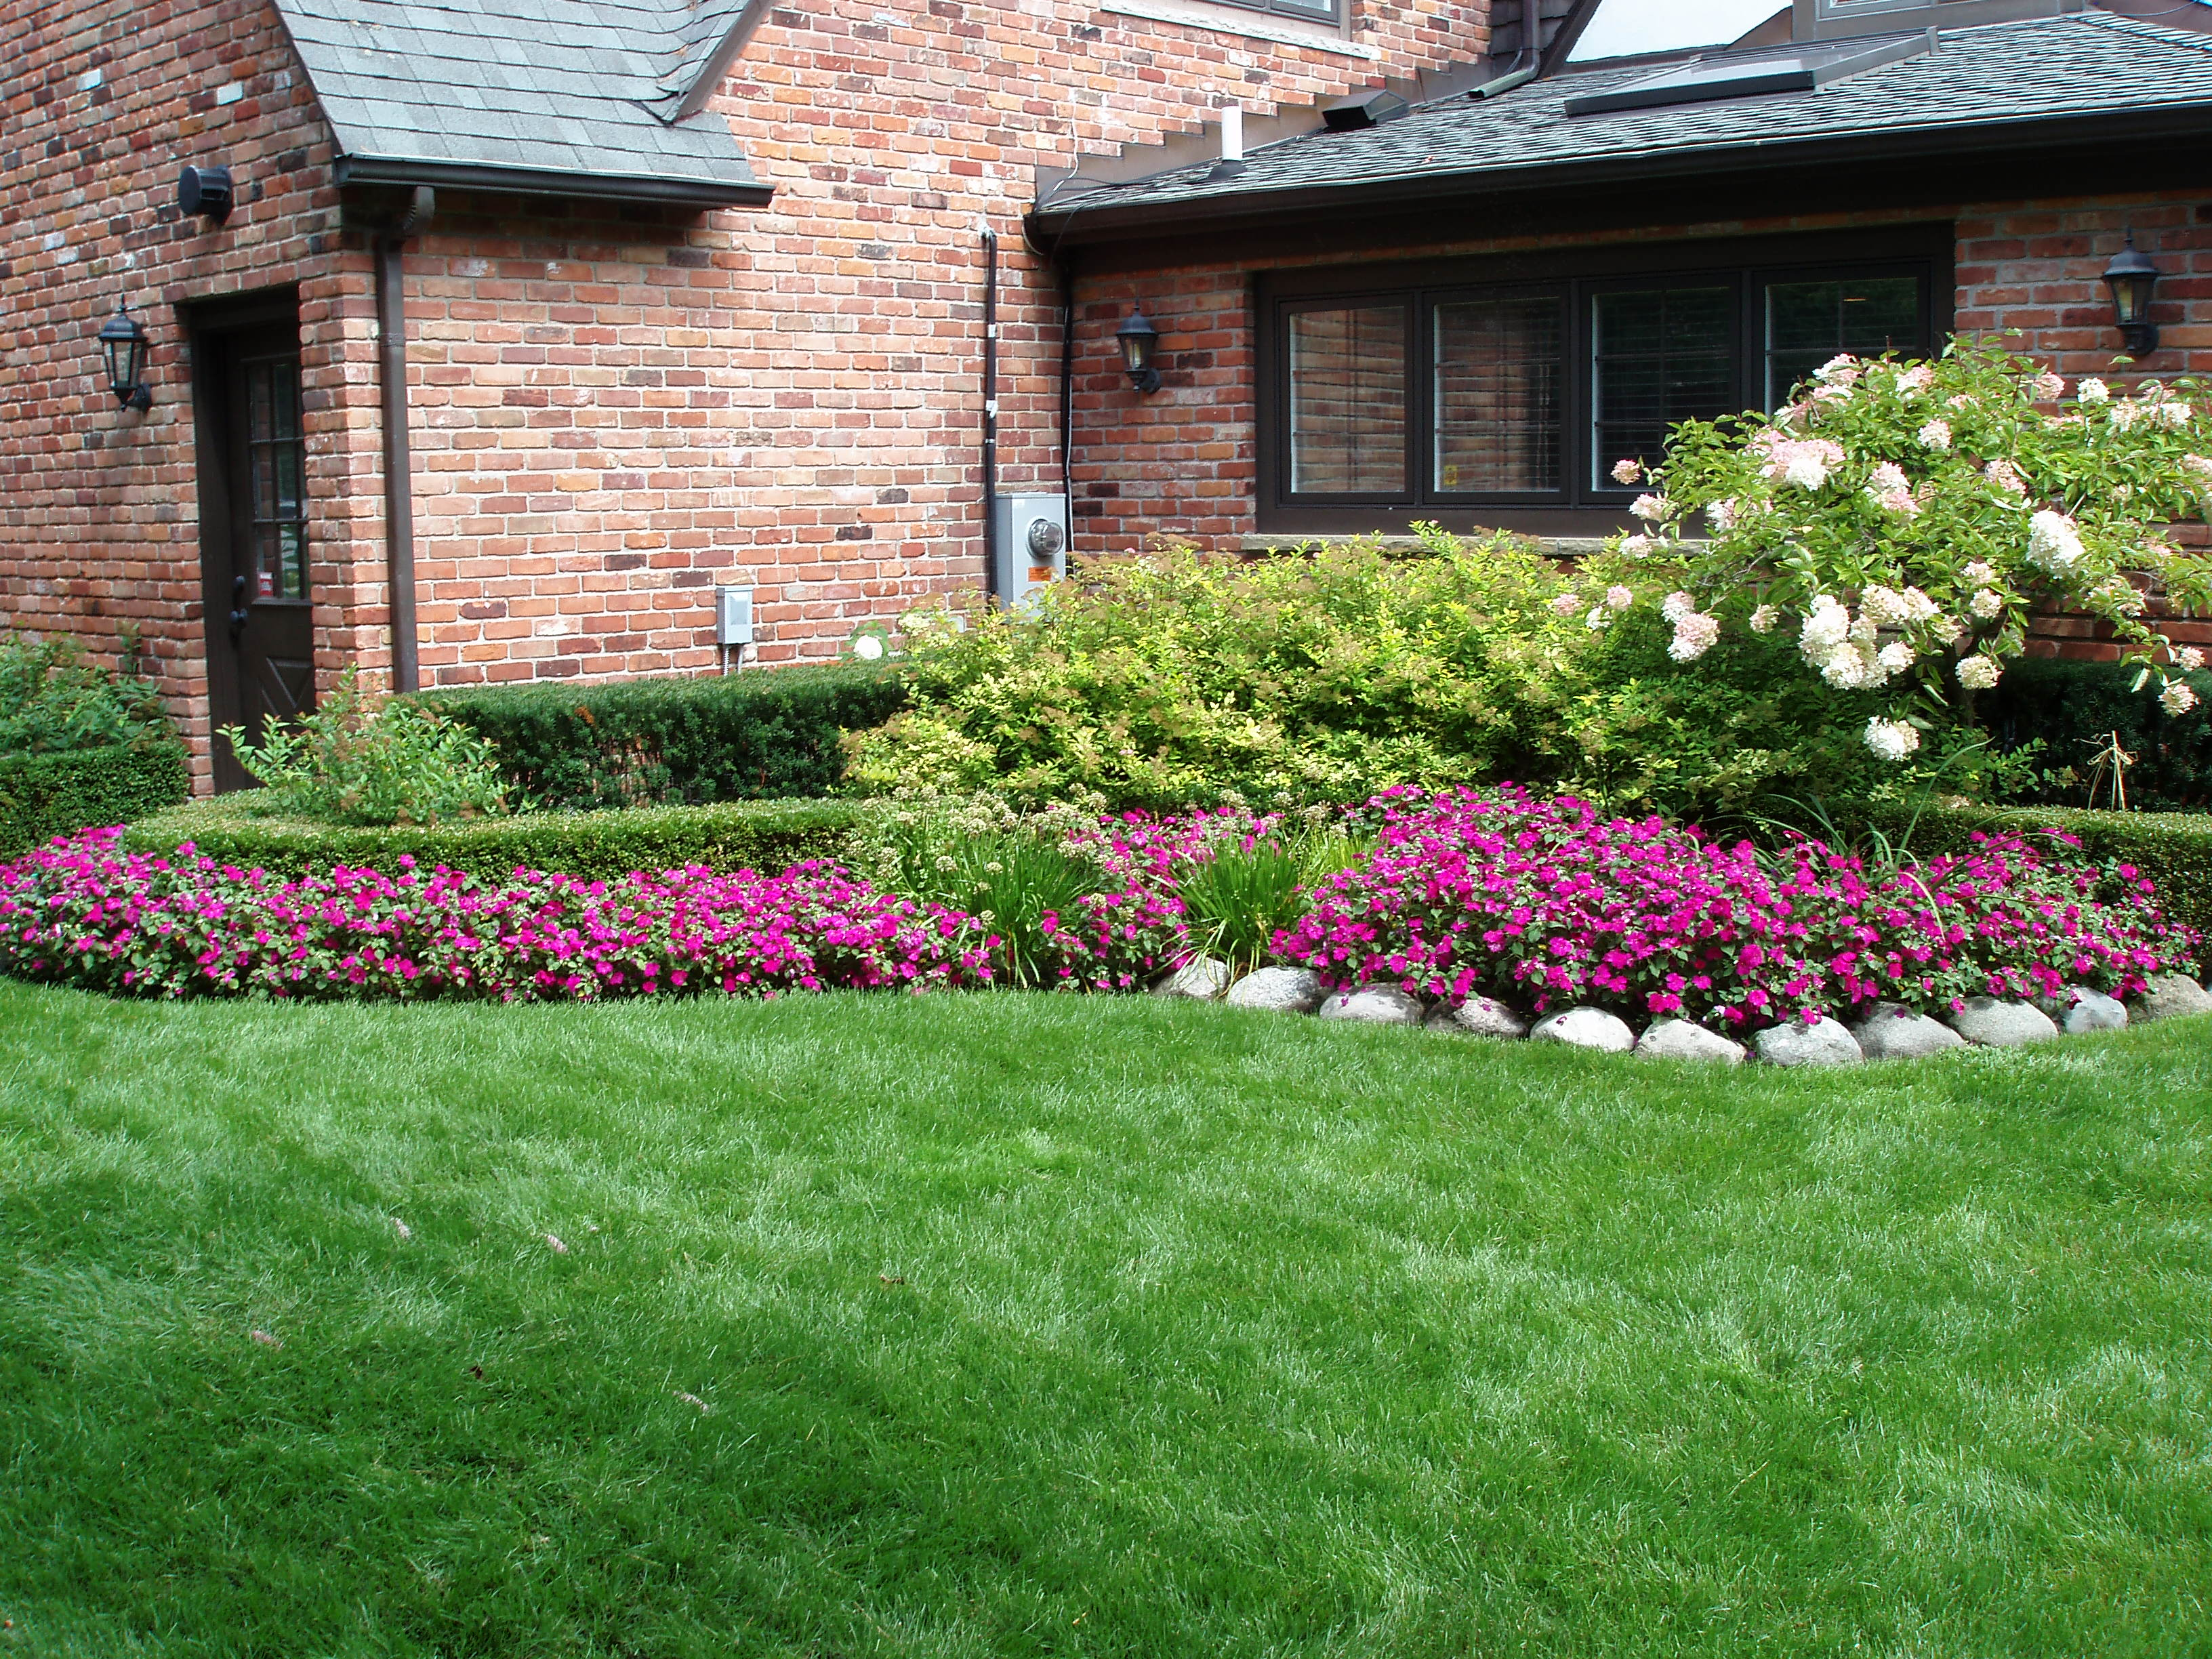 Landscaping total lawn care inc full lawn maintenance for House landscape design